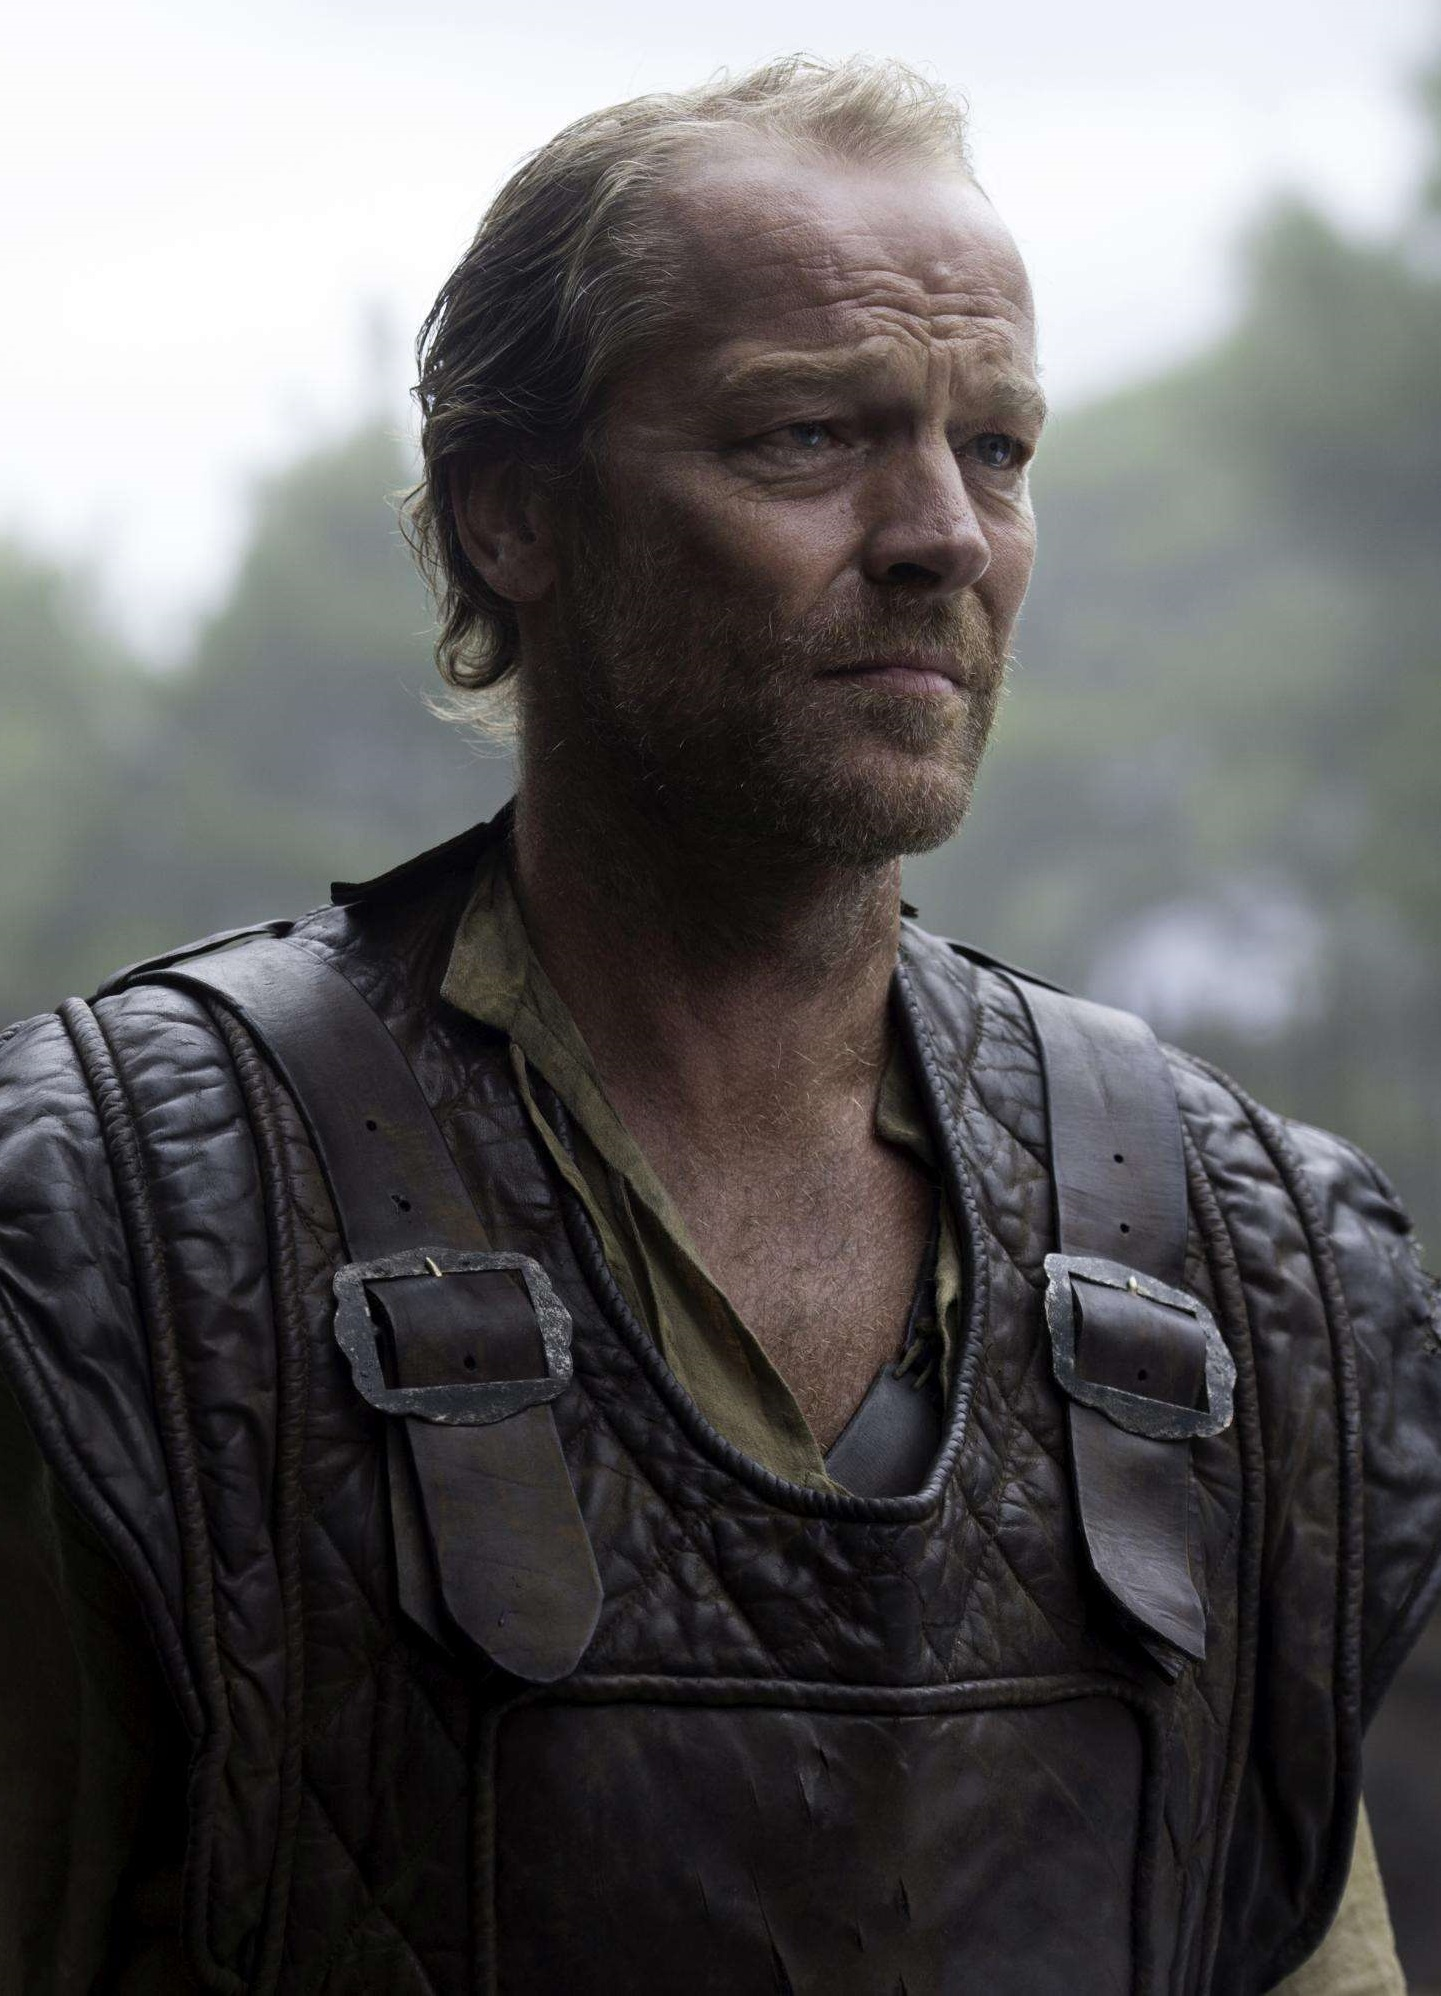 jorah hd still s5e8 jpg